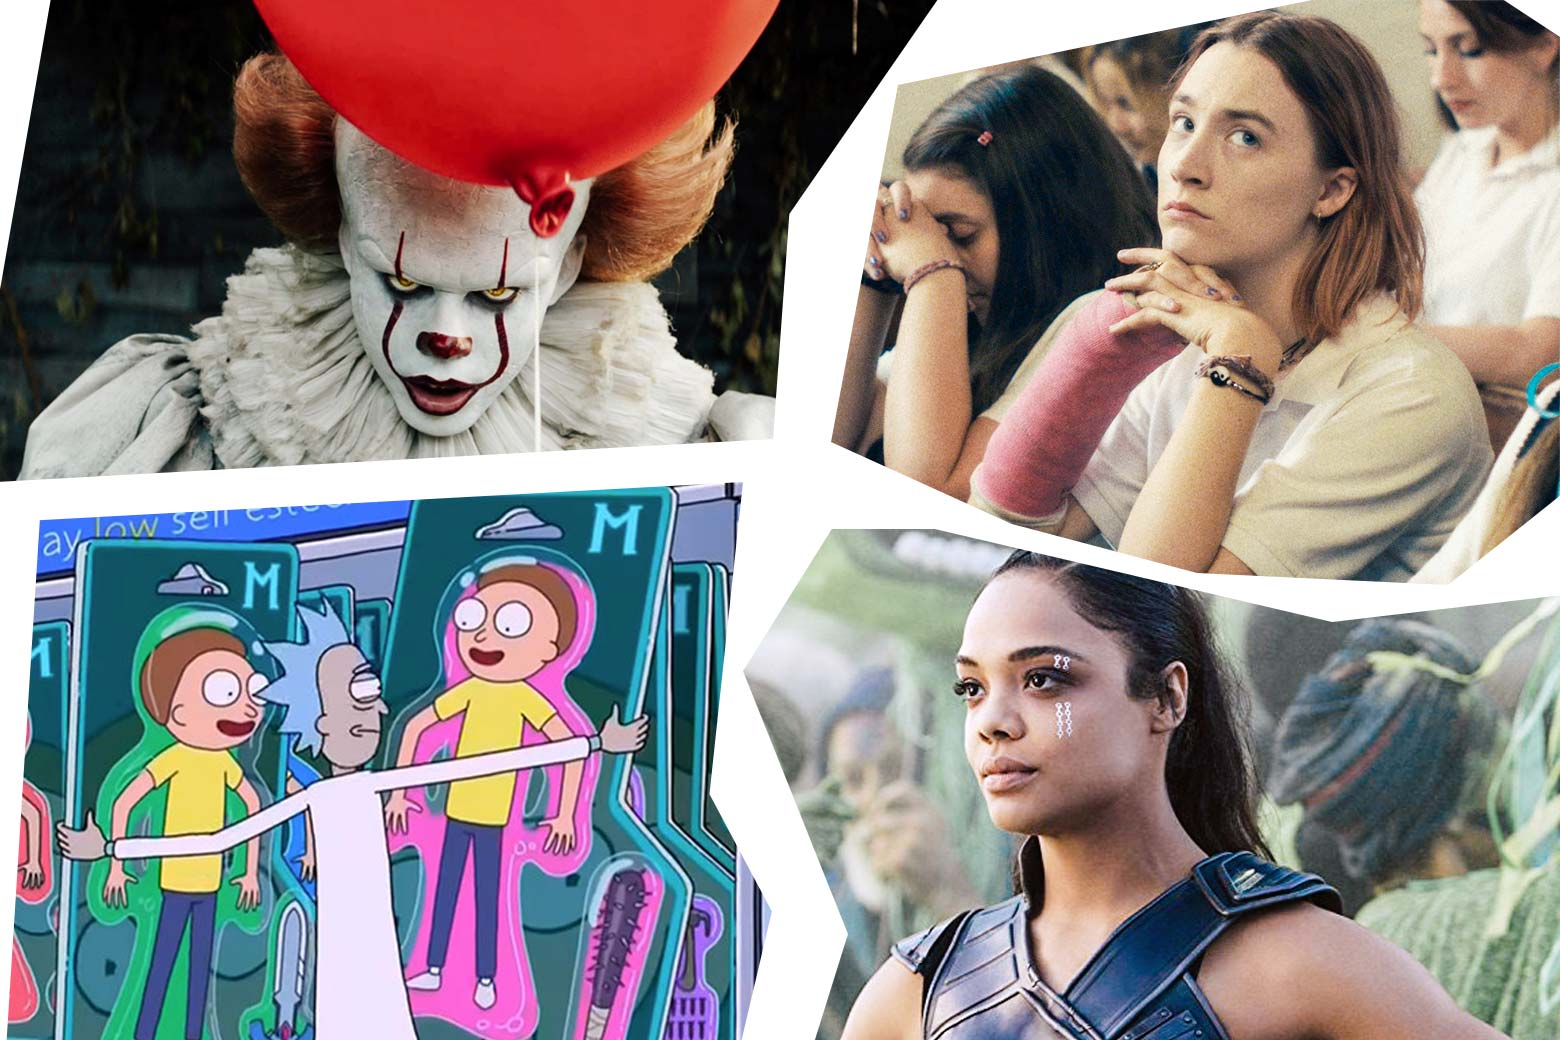 A mosaic of stills from movies and TV shows. Clockwise from the top left: Tim Curry as the clown from IT, Saoirse Ronan in Lady Bird; Tessa Thompson in Thor: Ragnarok; the animated characters Rick and Morty